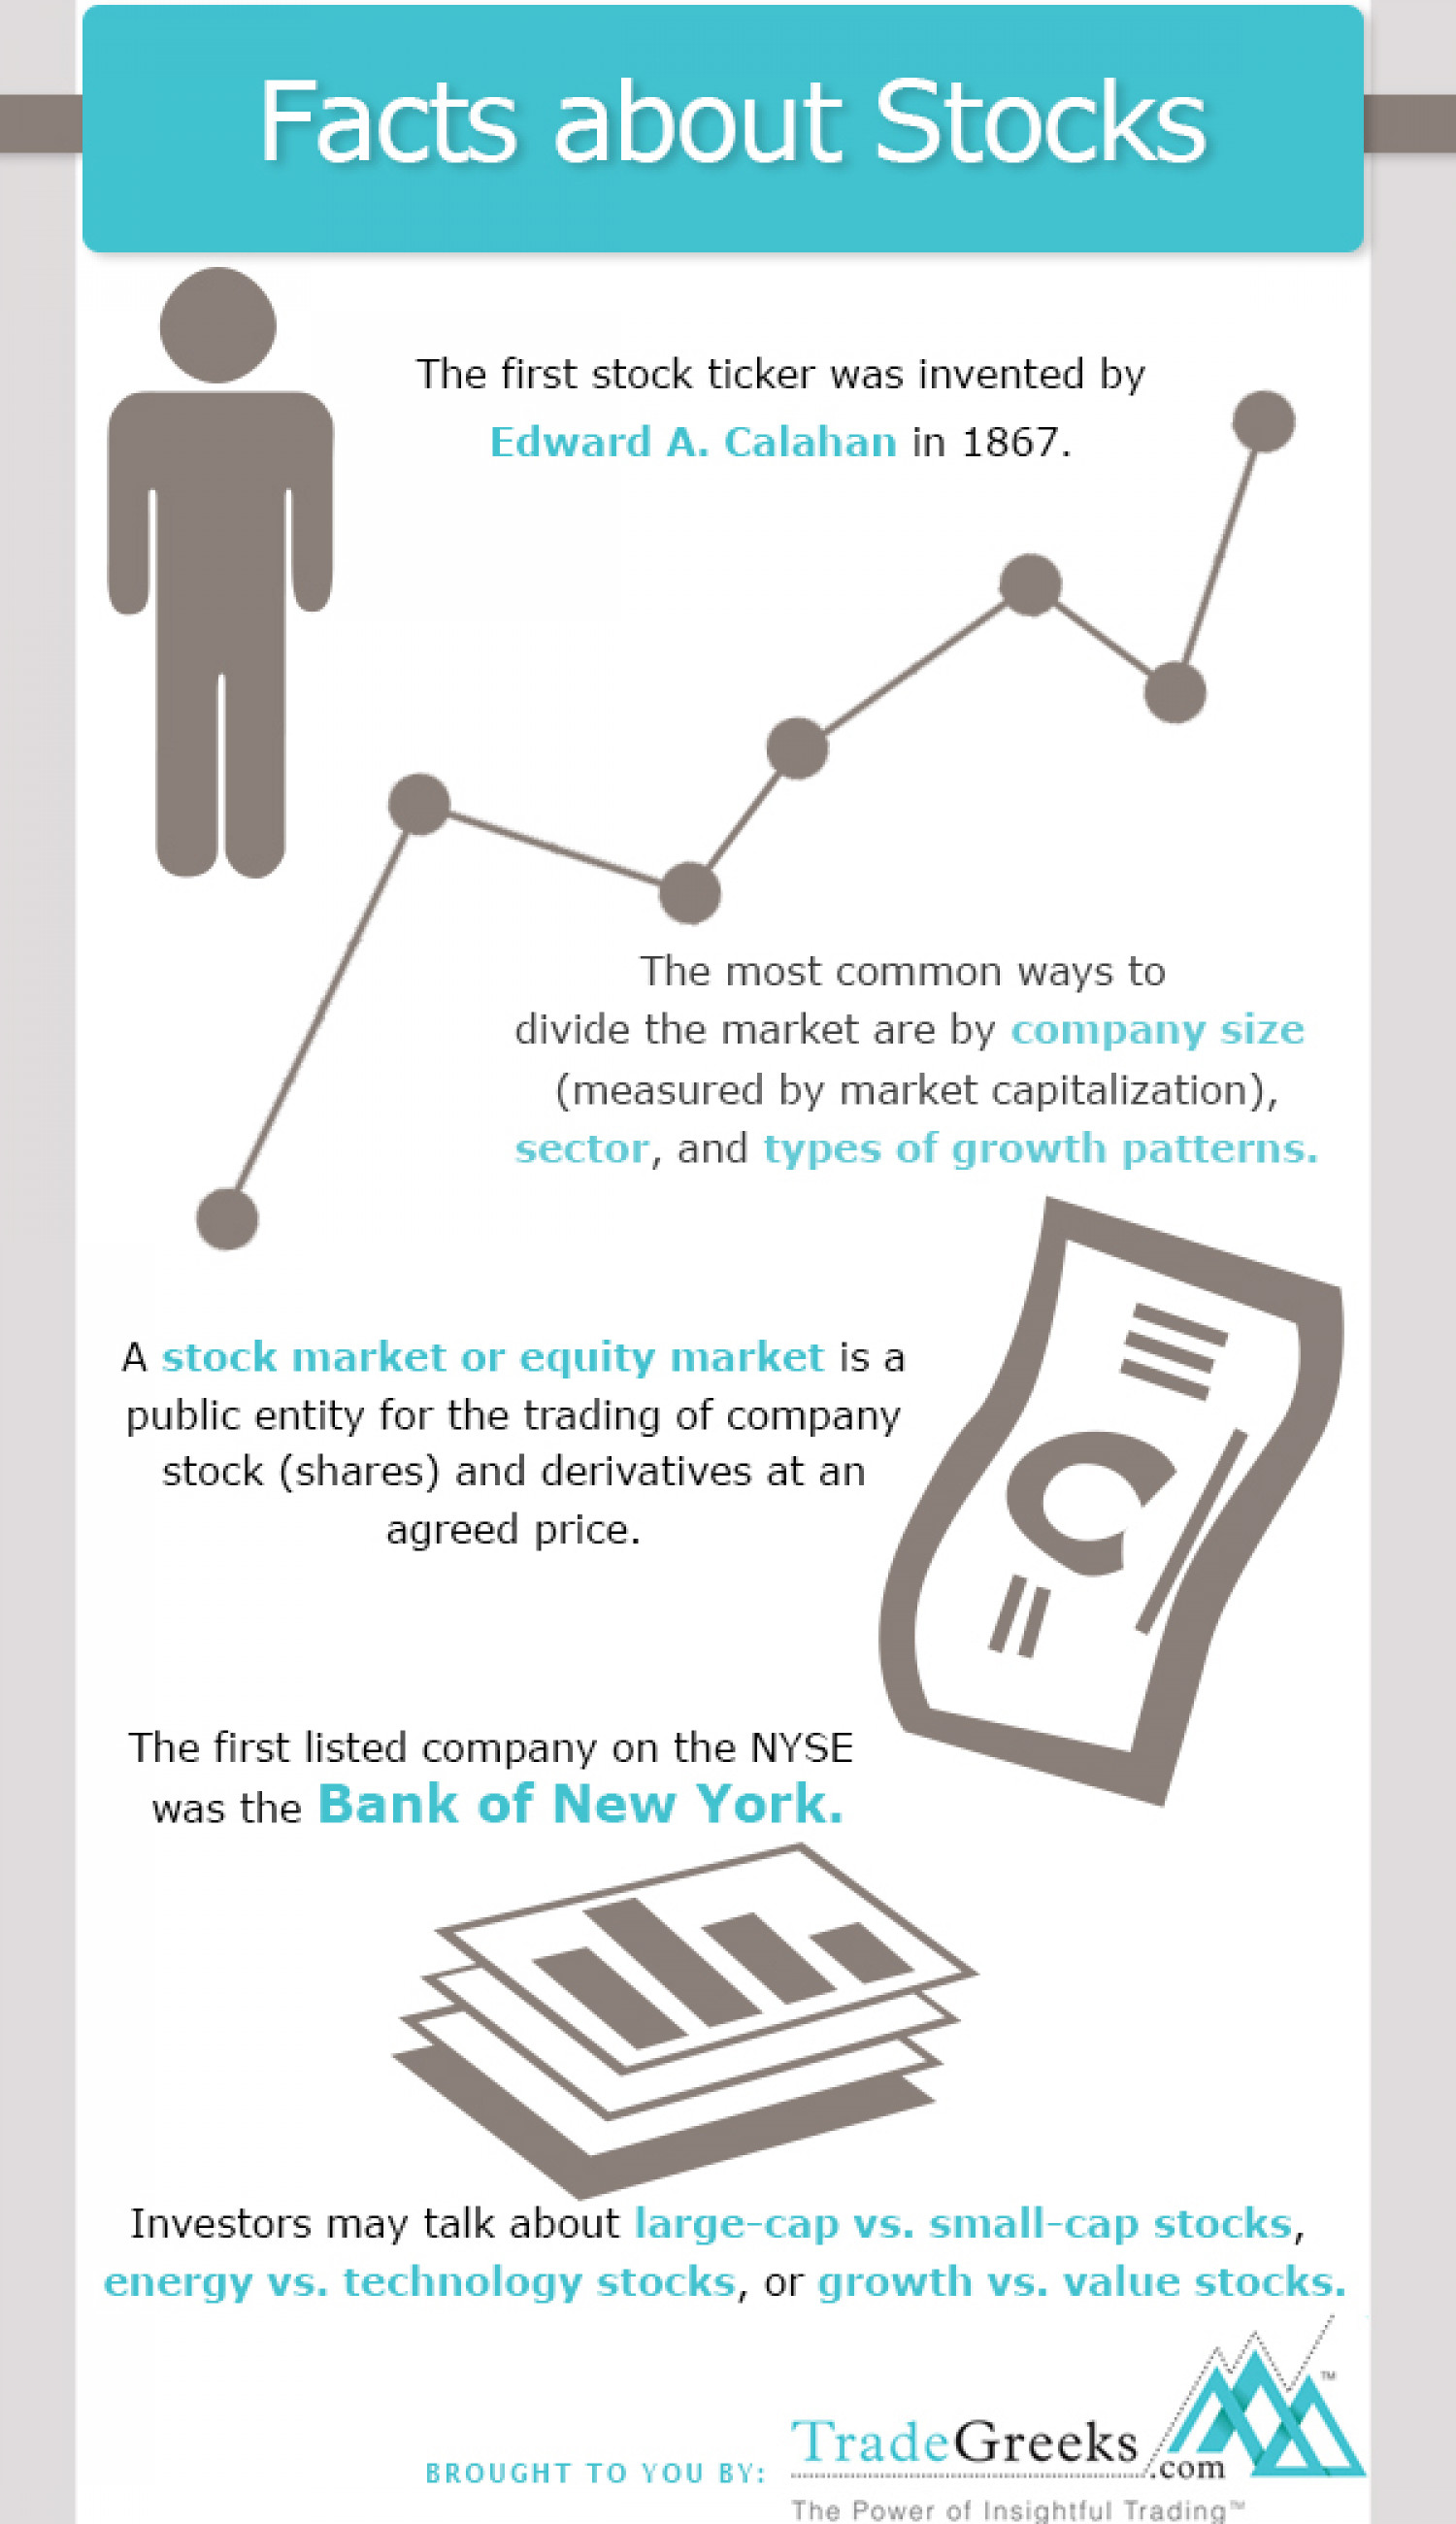 Facts About Stocks Infographic